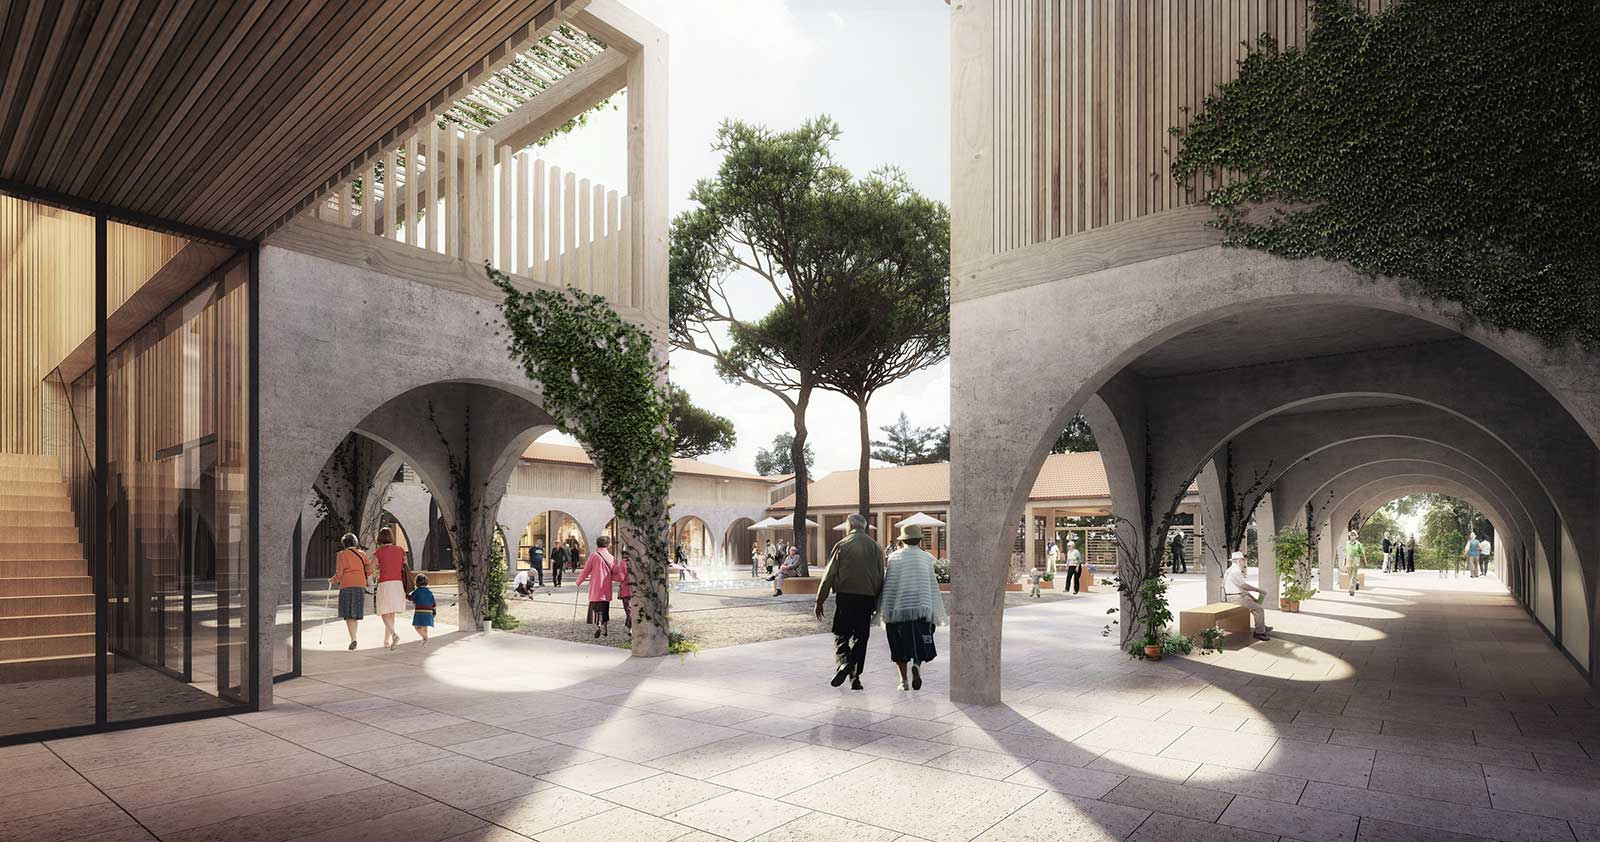 Medieval-inspired French village is designed specifically for Alzheimer's patients